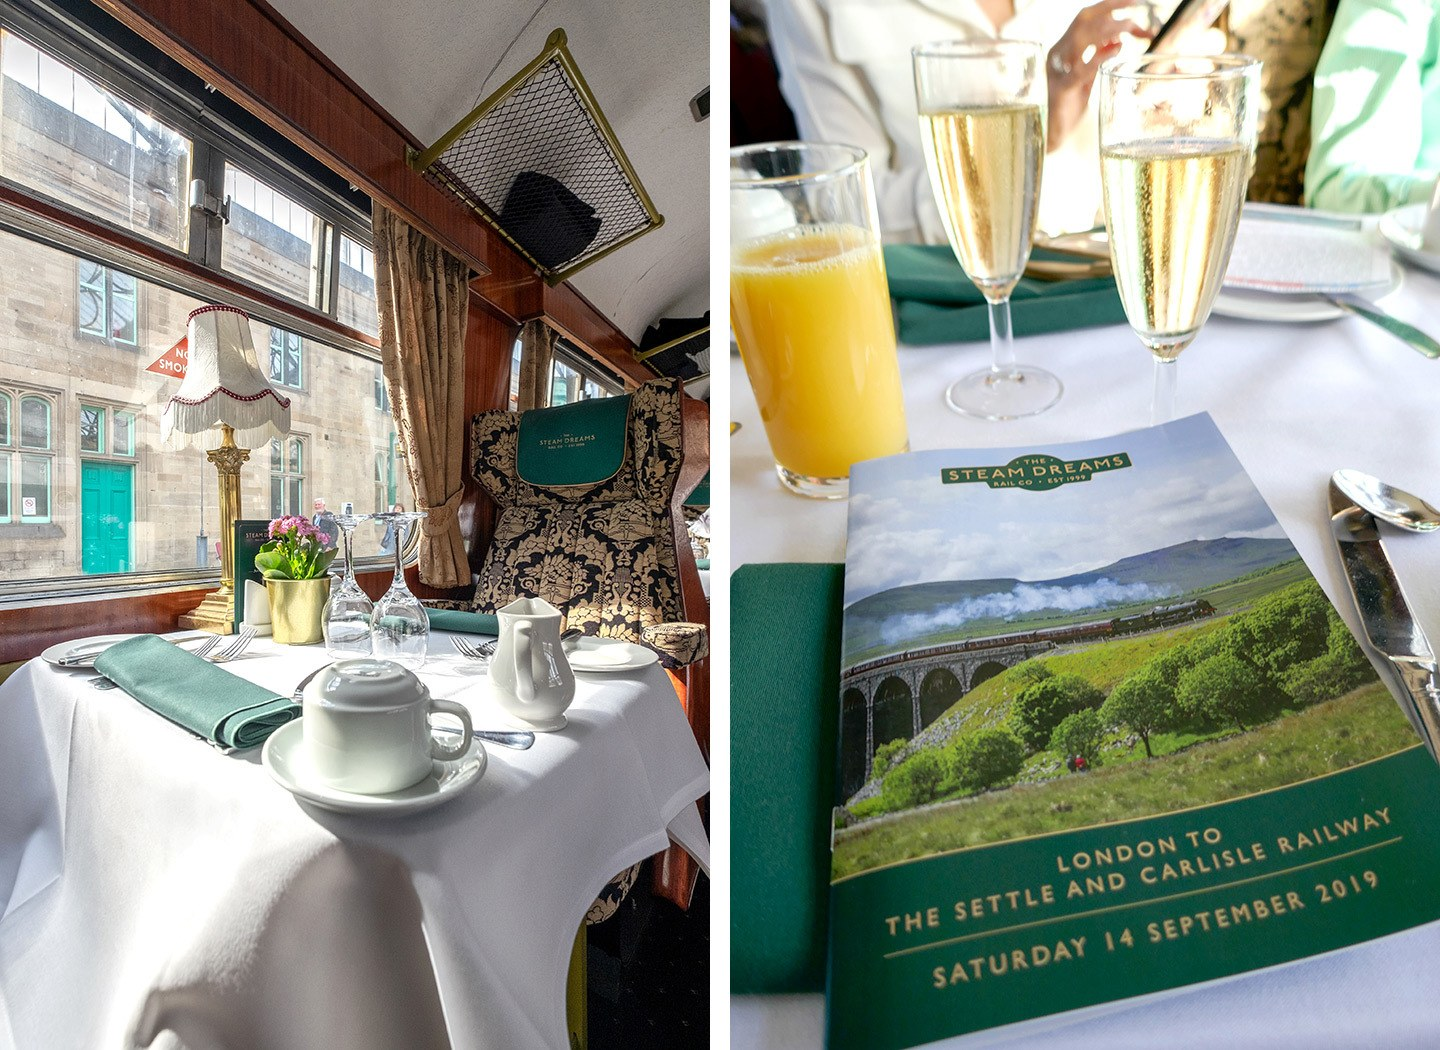 On board a steam train day trip Pullman Dining carriage